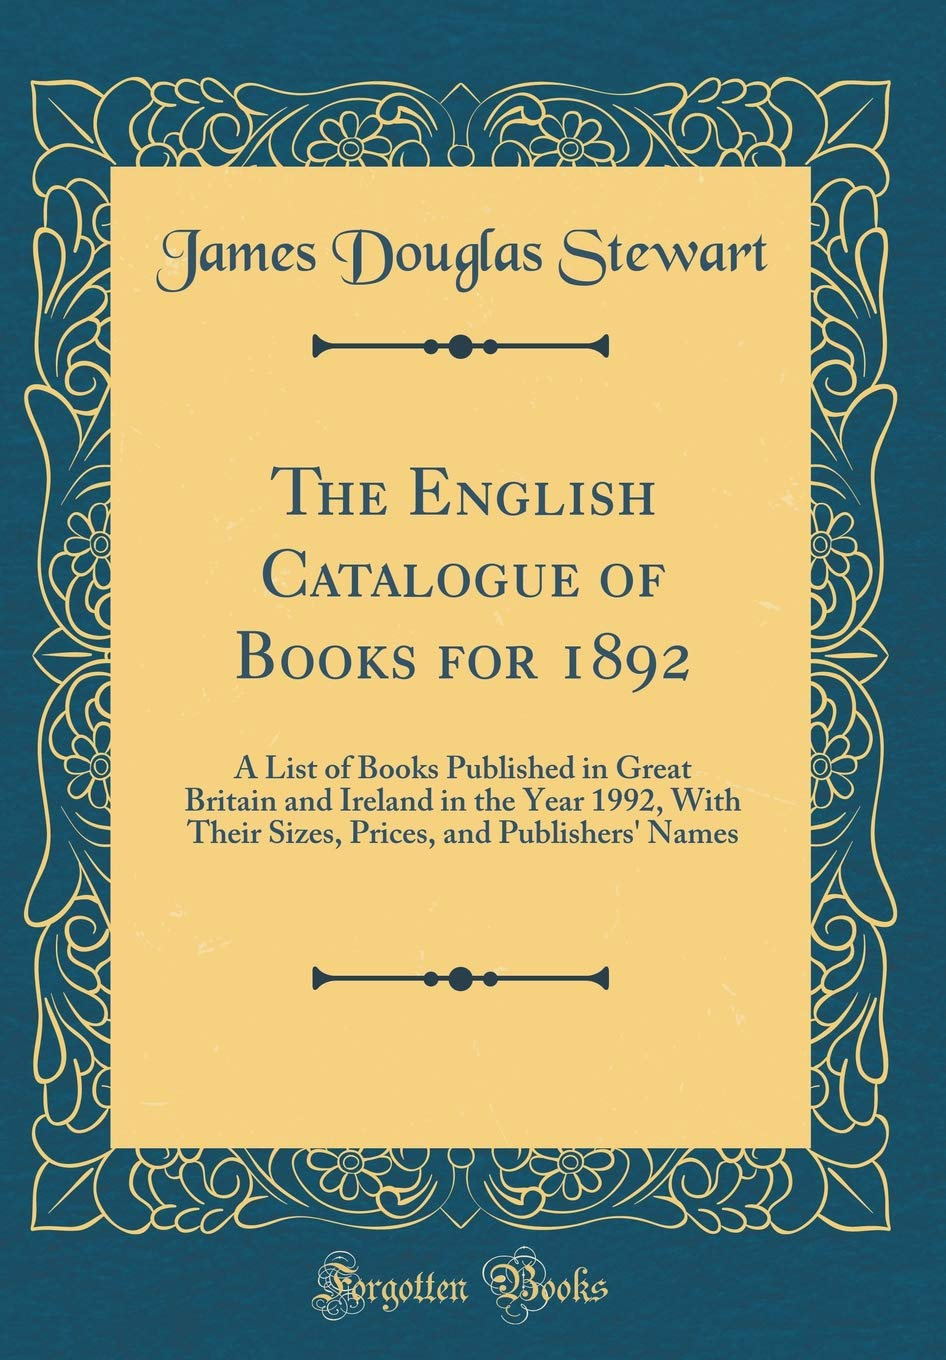 Download The English Catalogue of Books for 1892: A List of Books Published in Great Britain and Ireland in the Year 1992, with Their Sizes, Prices, and Publishers' Names (Classic Reprint) pdf